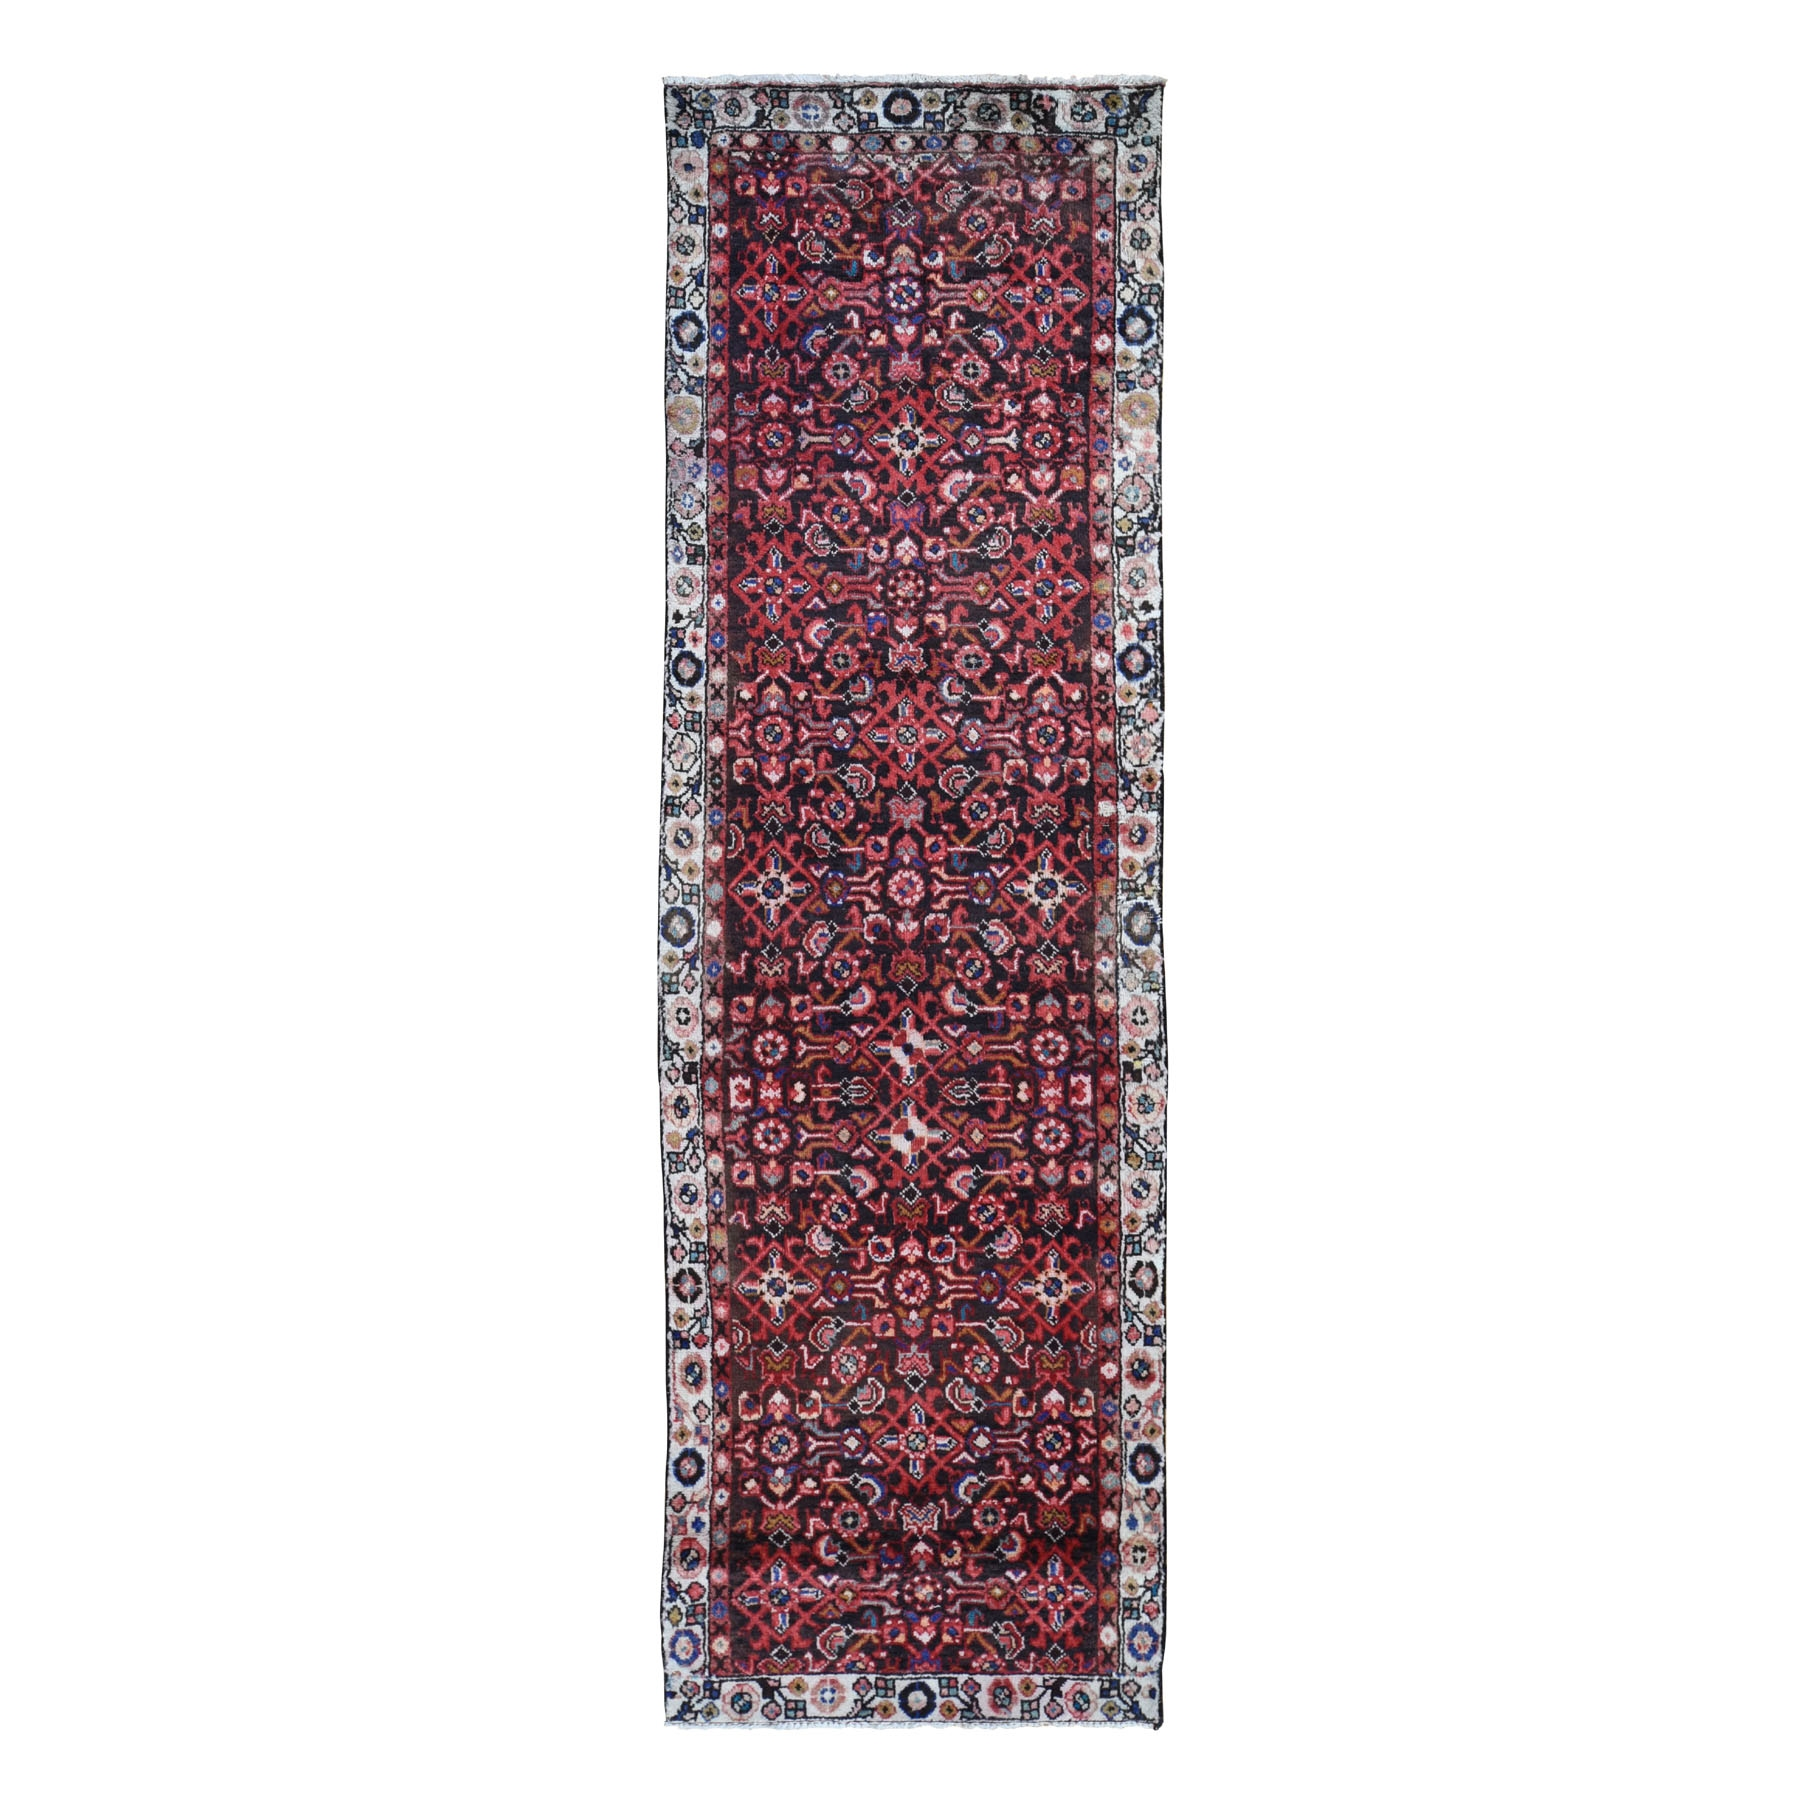 """3'2""""X10'10""""  Brown Vintage Hamadan Fish Design Pure Wool  Hand Knotted Runner Oriental Rug moad896e"""